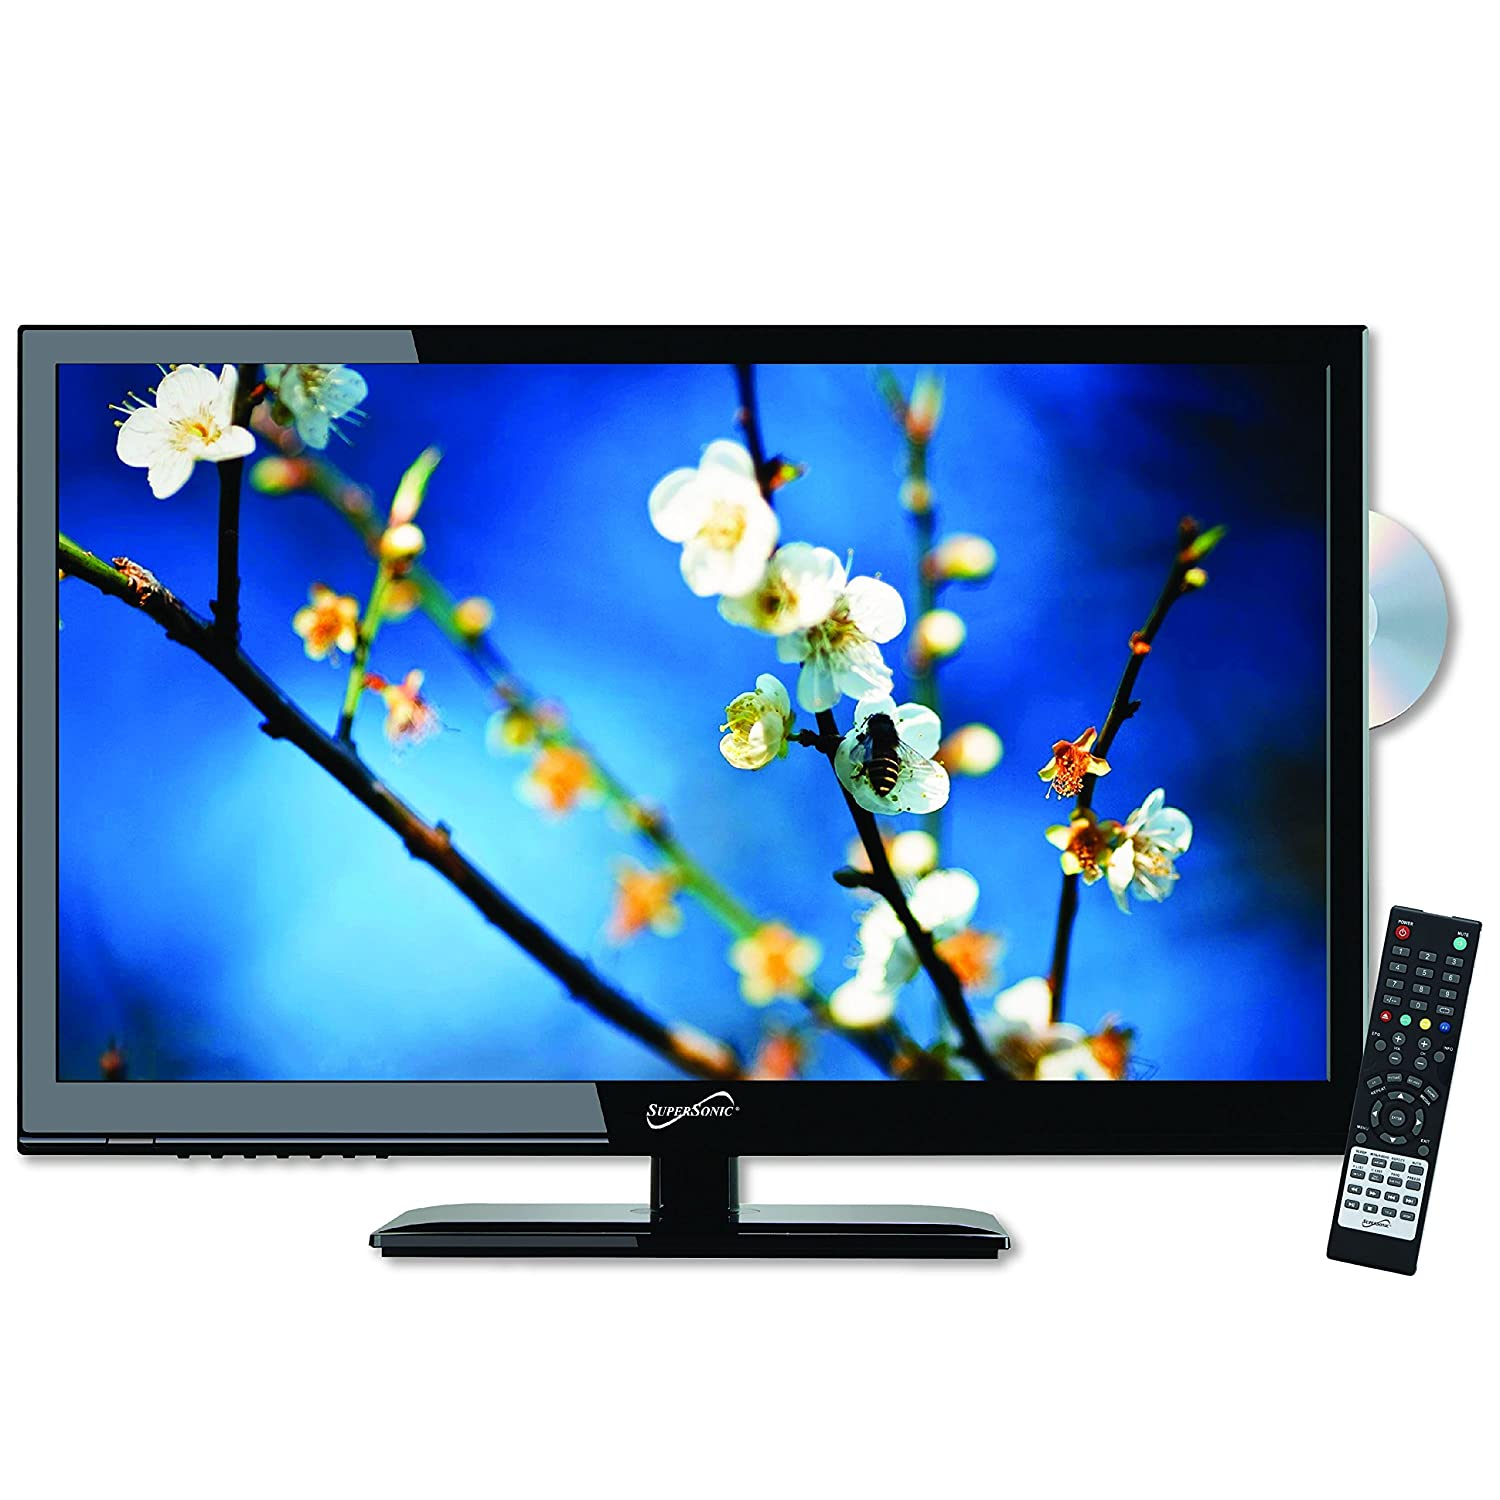 SuperSonic 24-Inch 1080p LED Widescreen HDTV with HDMI and Built-in DVD Player, AC/DC Compatible SC-2412